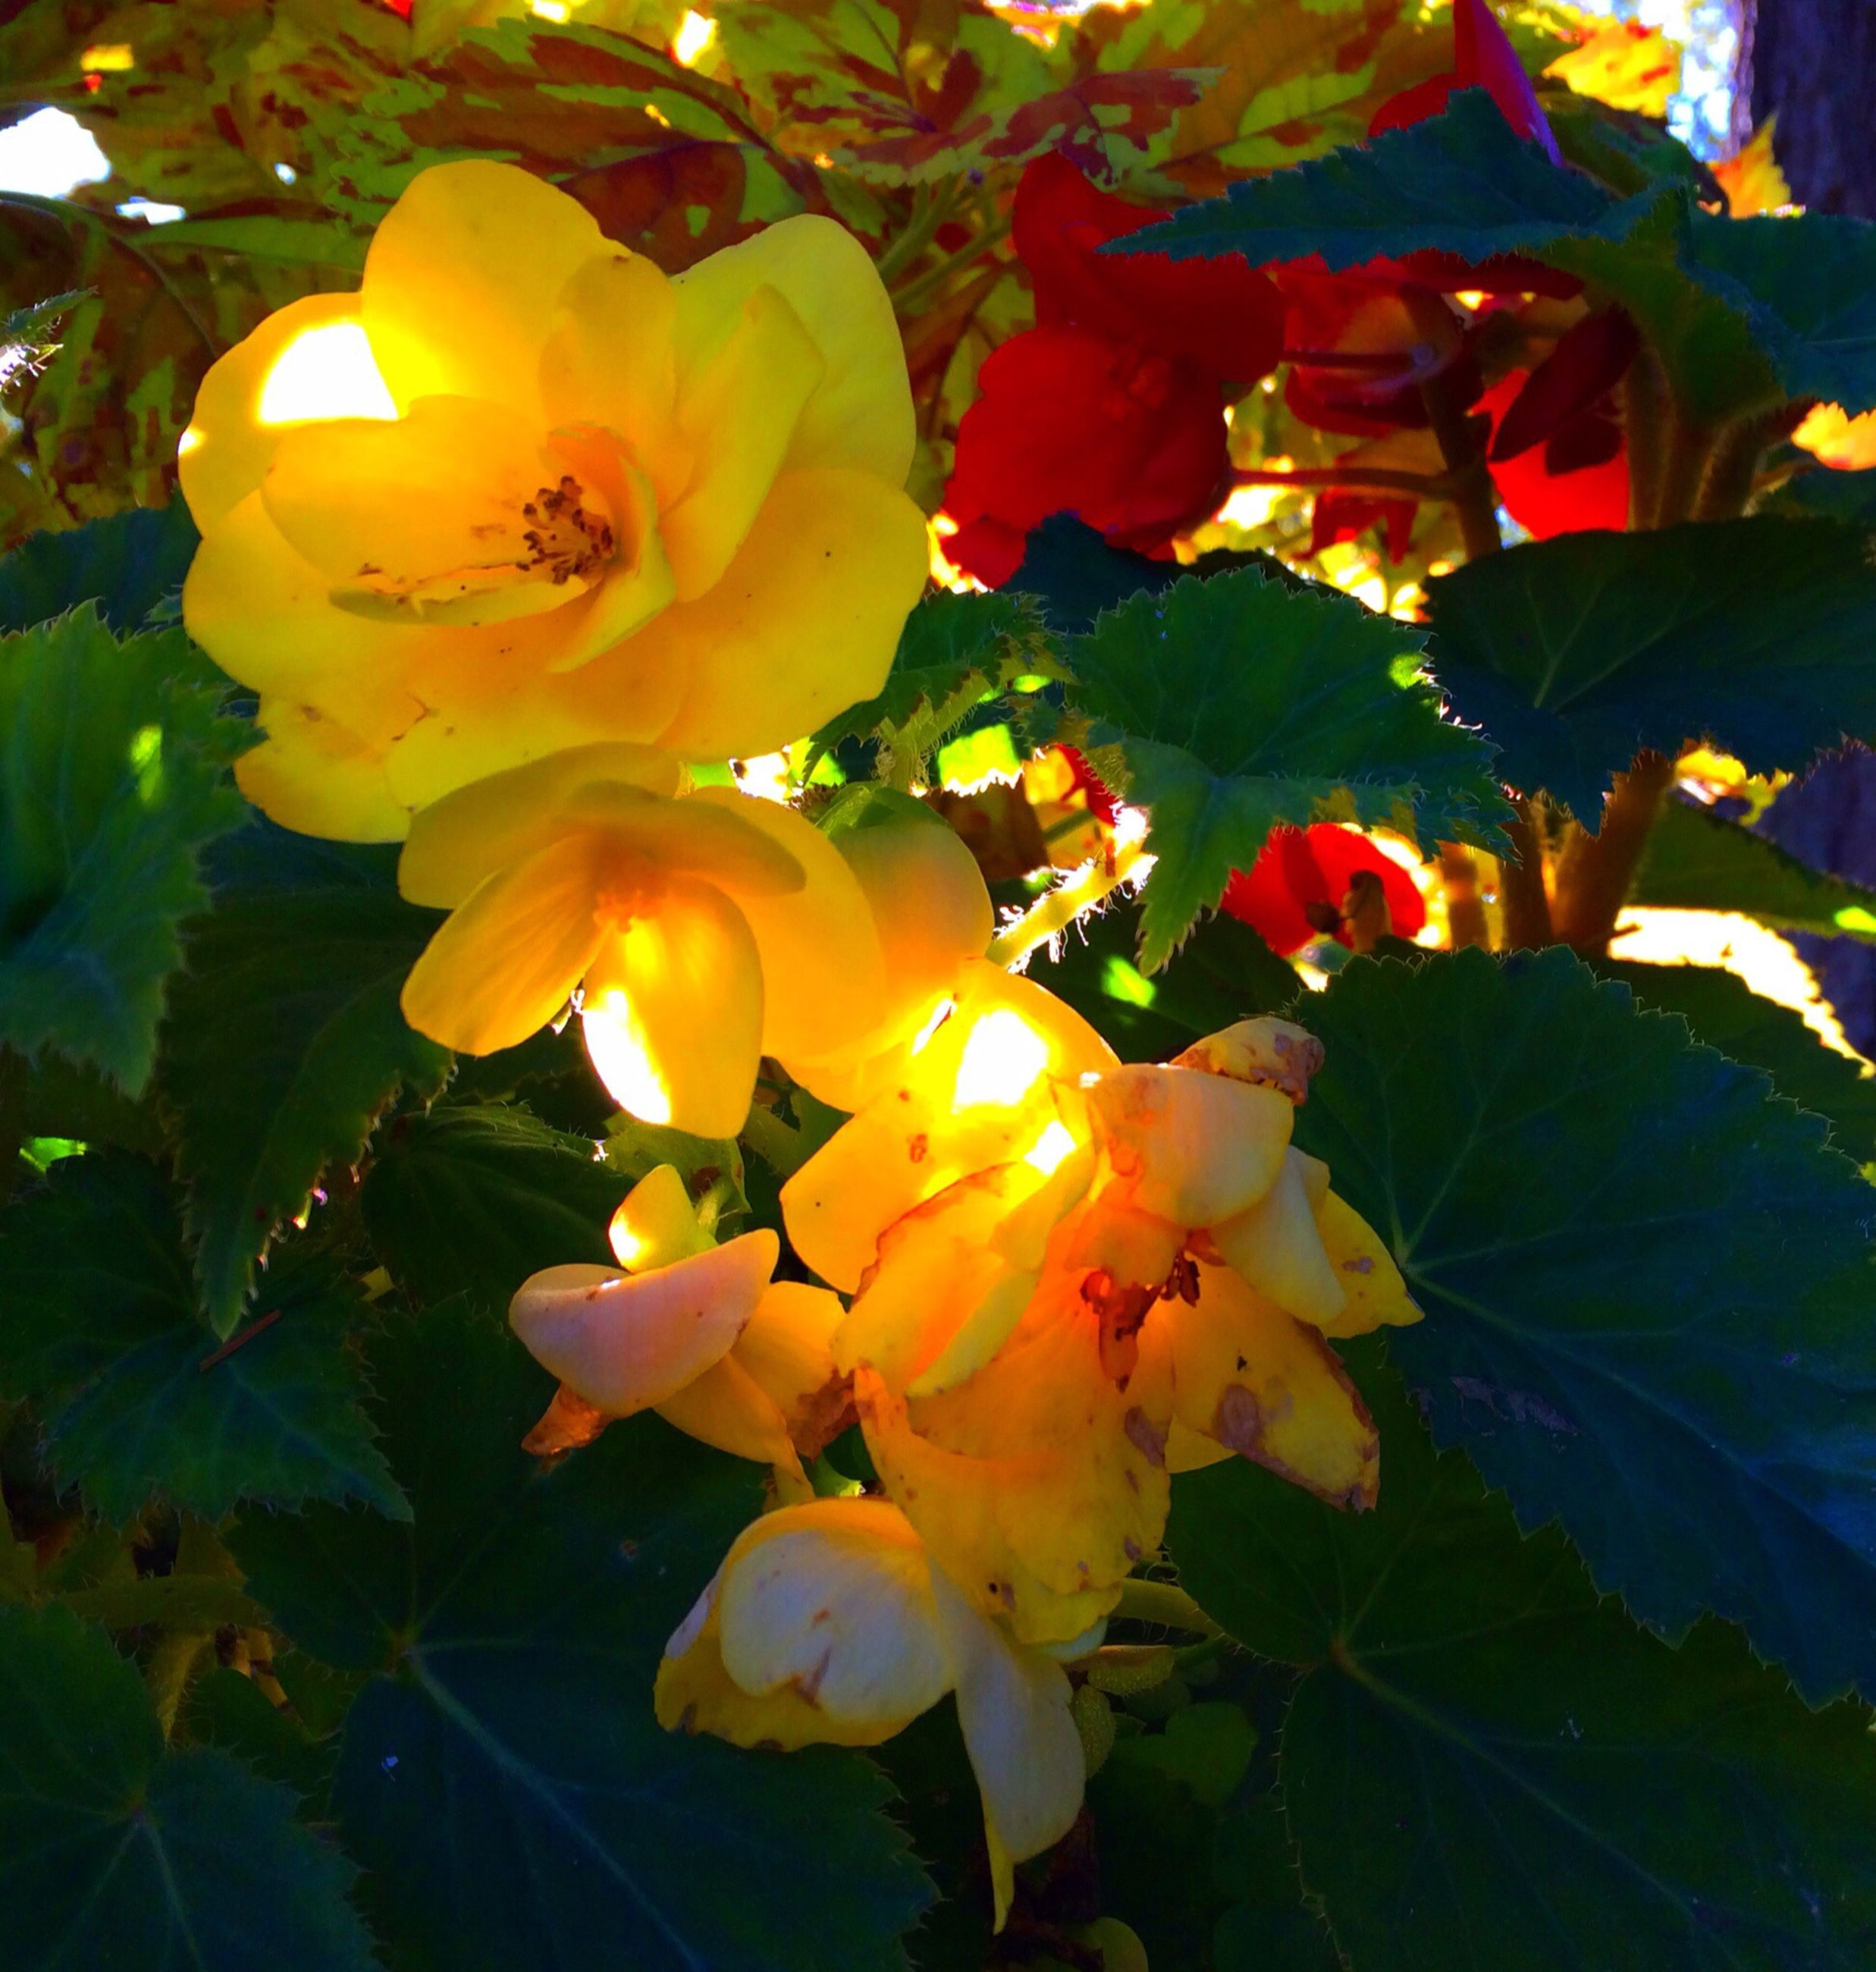 flower, petal, freshness, fragility, growth, flower head, beauty in nature, leaf, yellow, blooming, plant, nature, close-up, in bloom, blossom, low angle view, sunlight, no people, day, focus on foreground